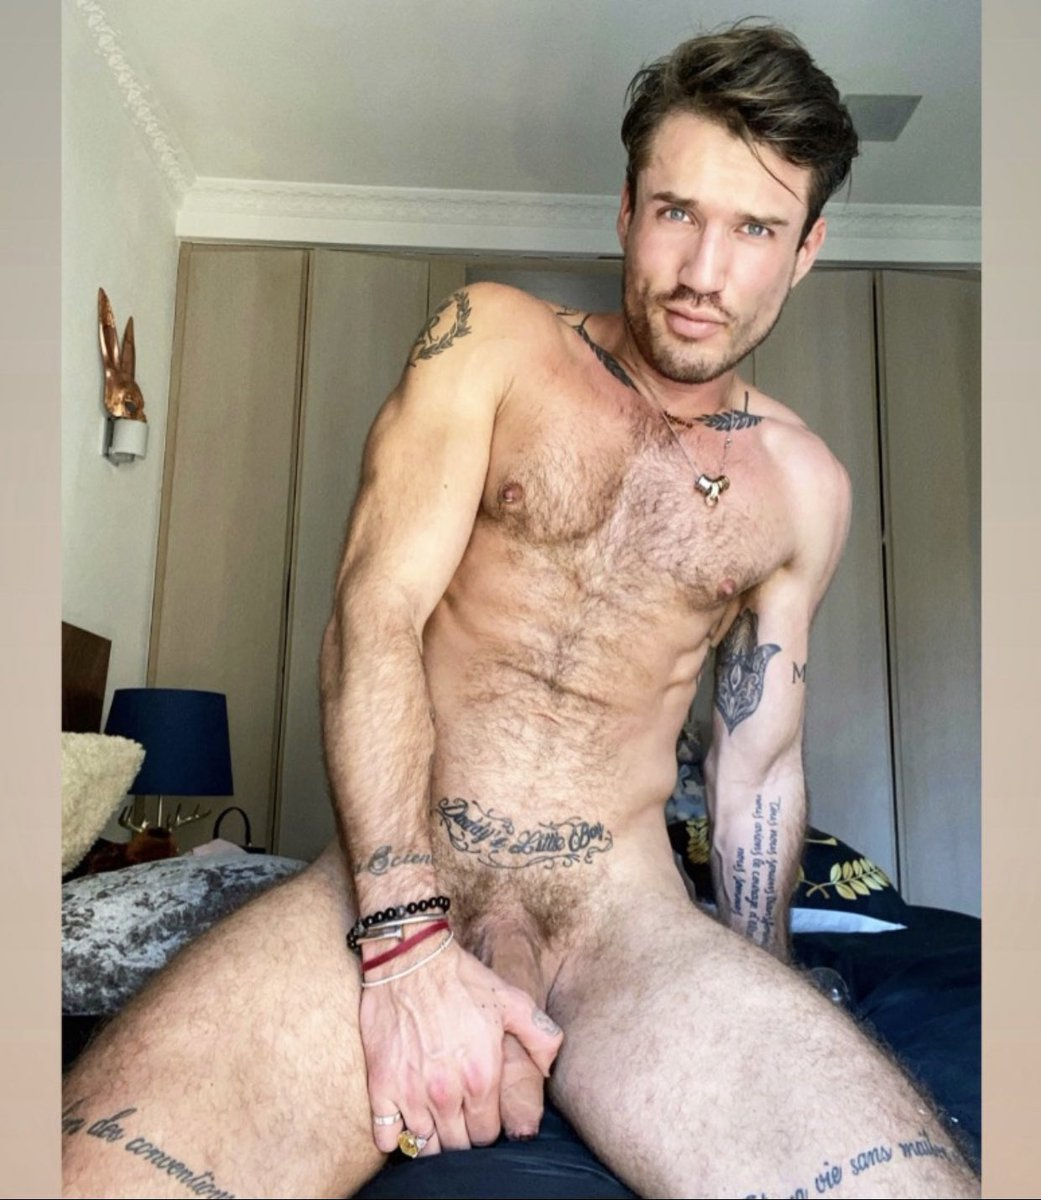 Holding on to dear life 😈 Onlyfans.com/the_theo_ford Onlyfans.com/the_theo_ford Onlyfans.com/the_theo_ford